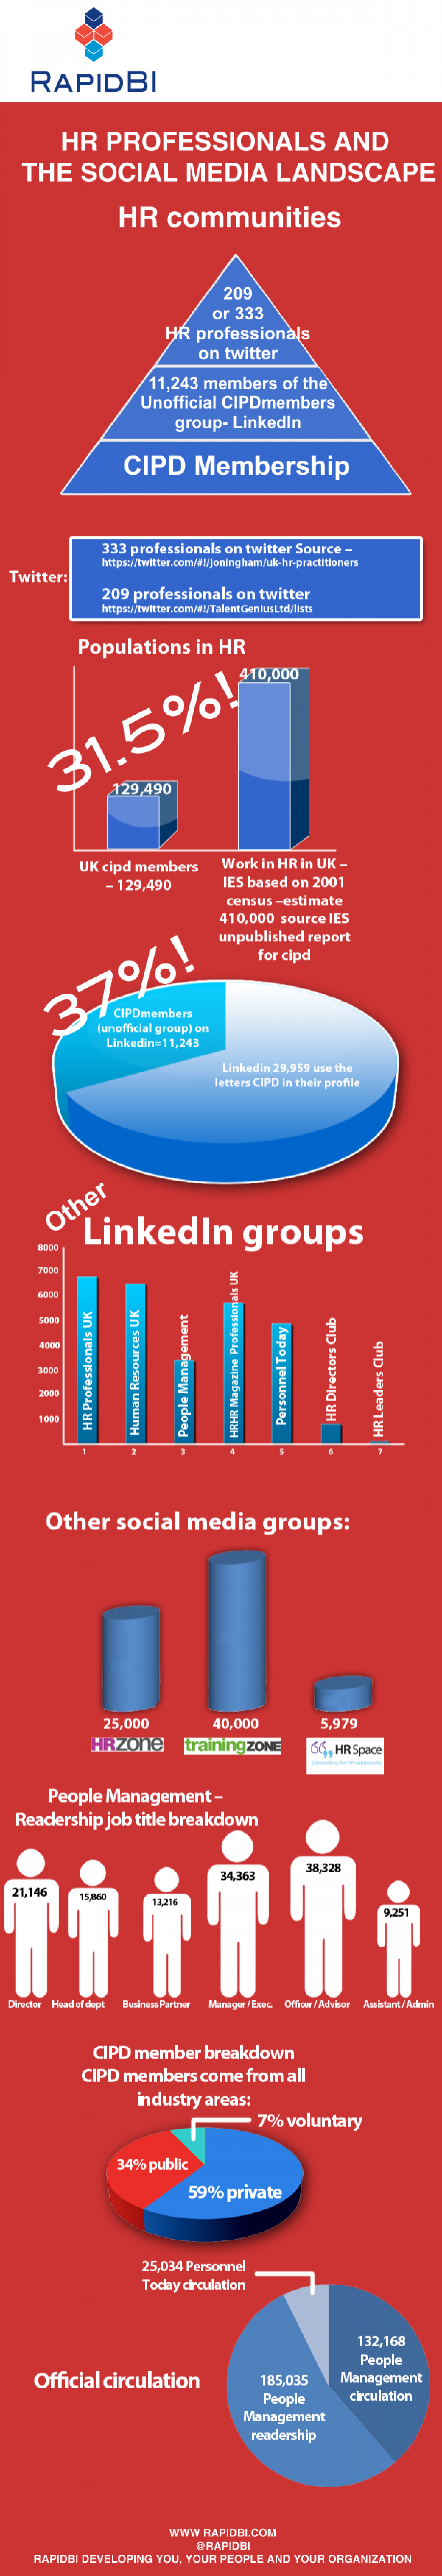 Human Resources on Social Media in the UK Infographic